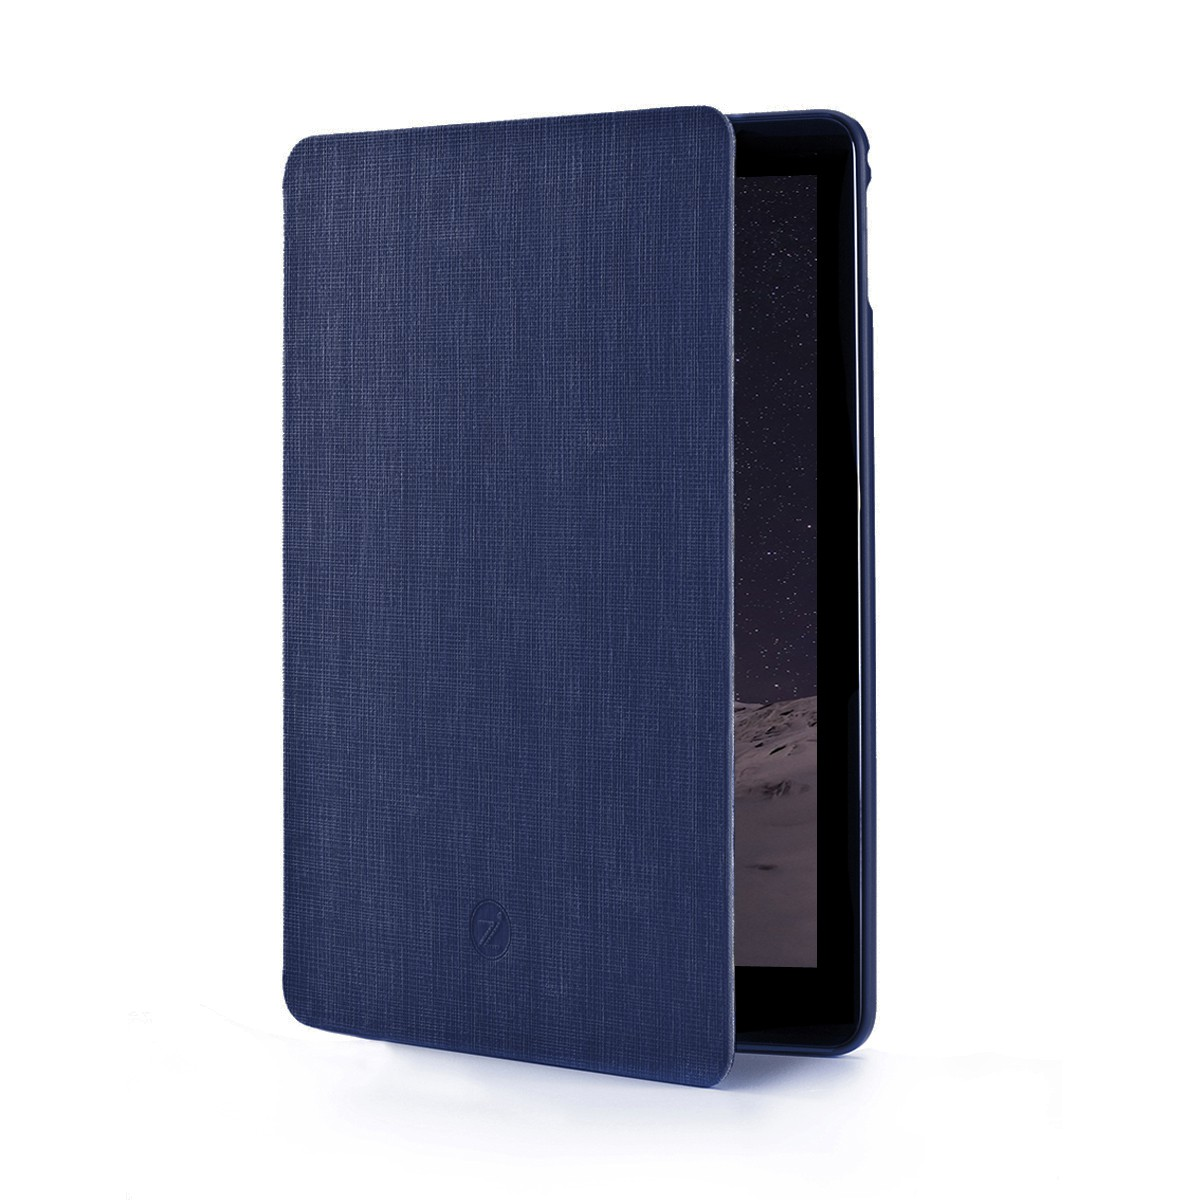 Чехол книжка Cozistyle Leather Smart Shell для Apple iPad Air 2 (синий)